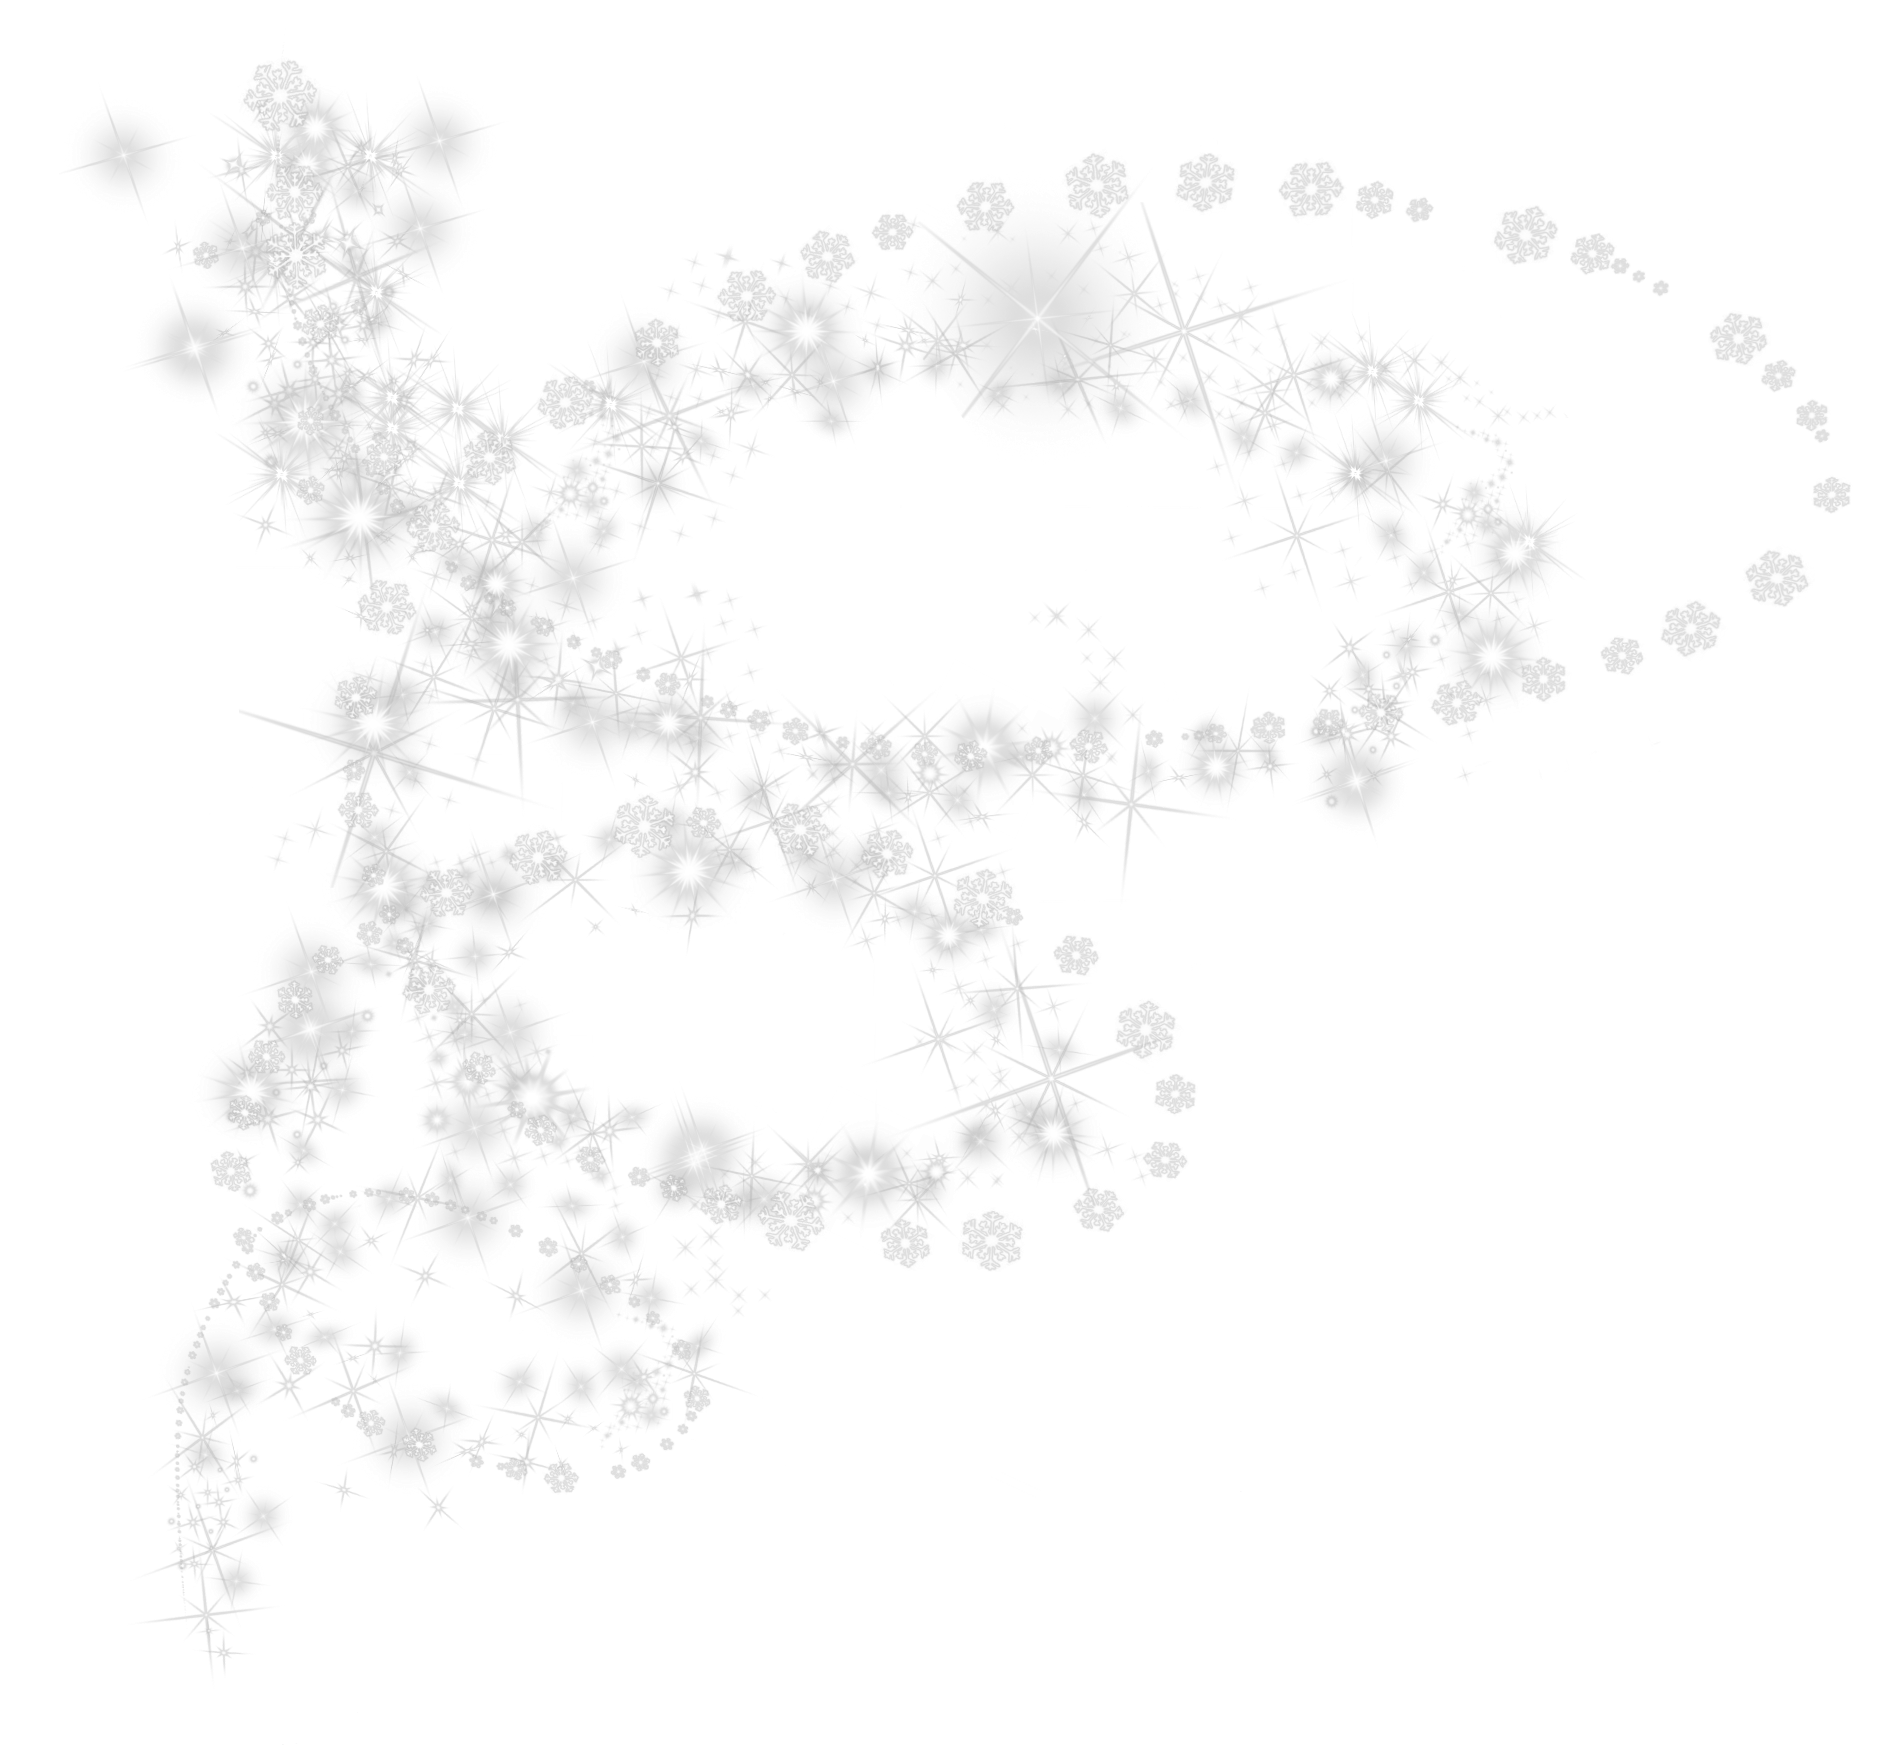 Download Free High-quality Snowflakes Falling Png Transparent Images image #34499